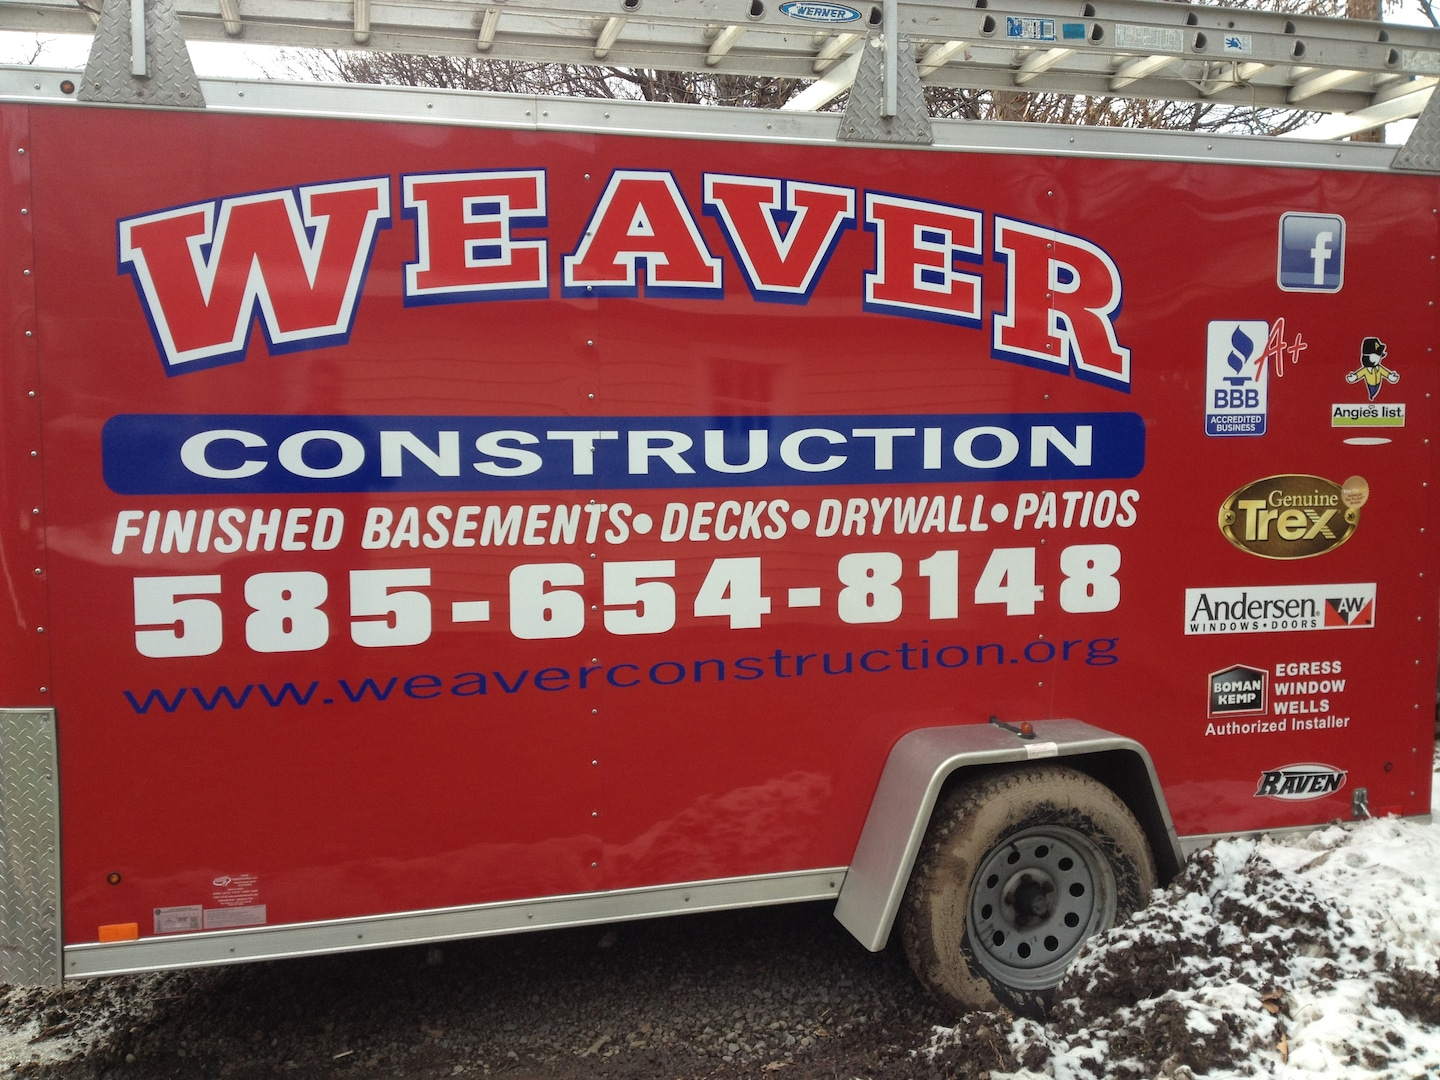 Weaver Construction